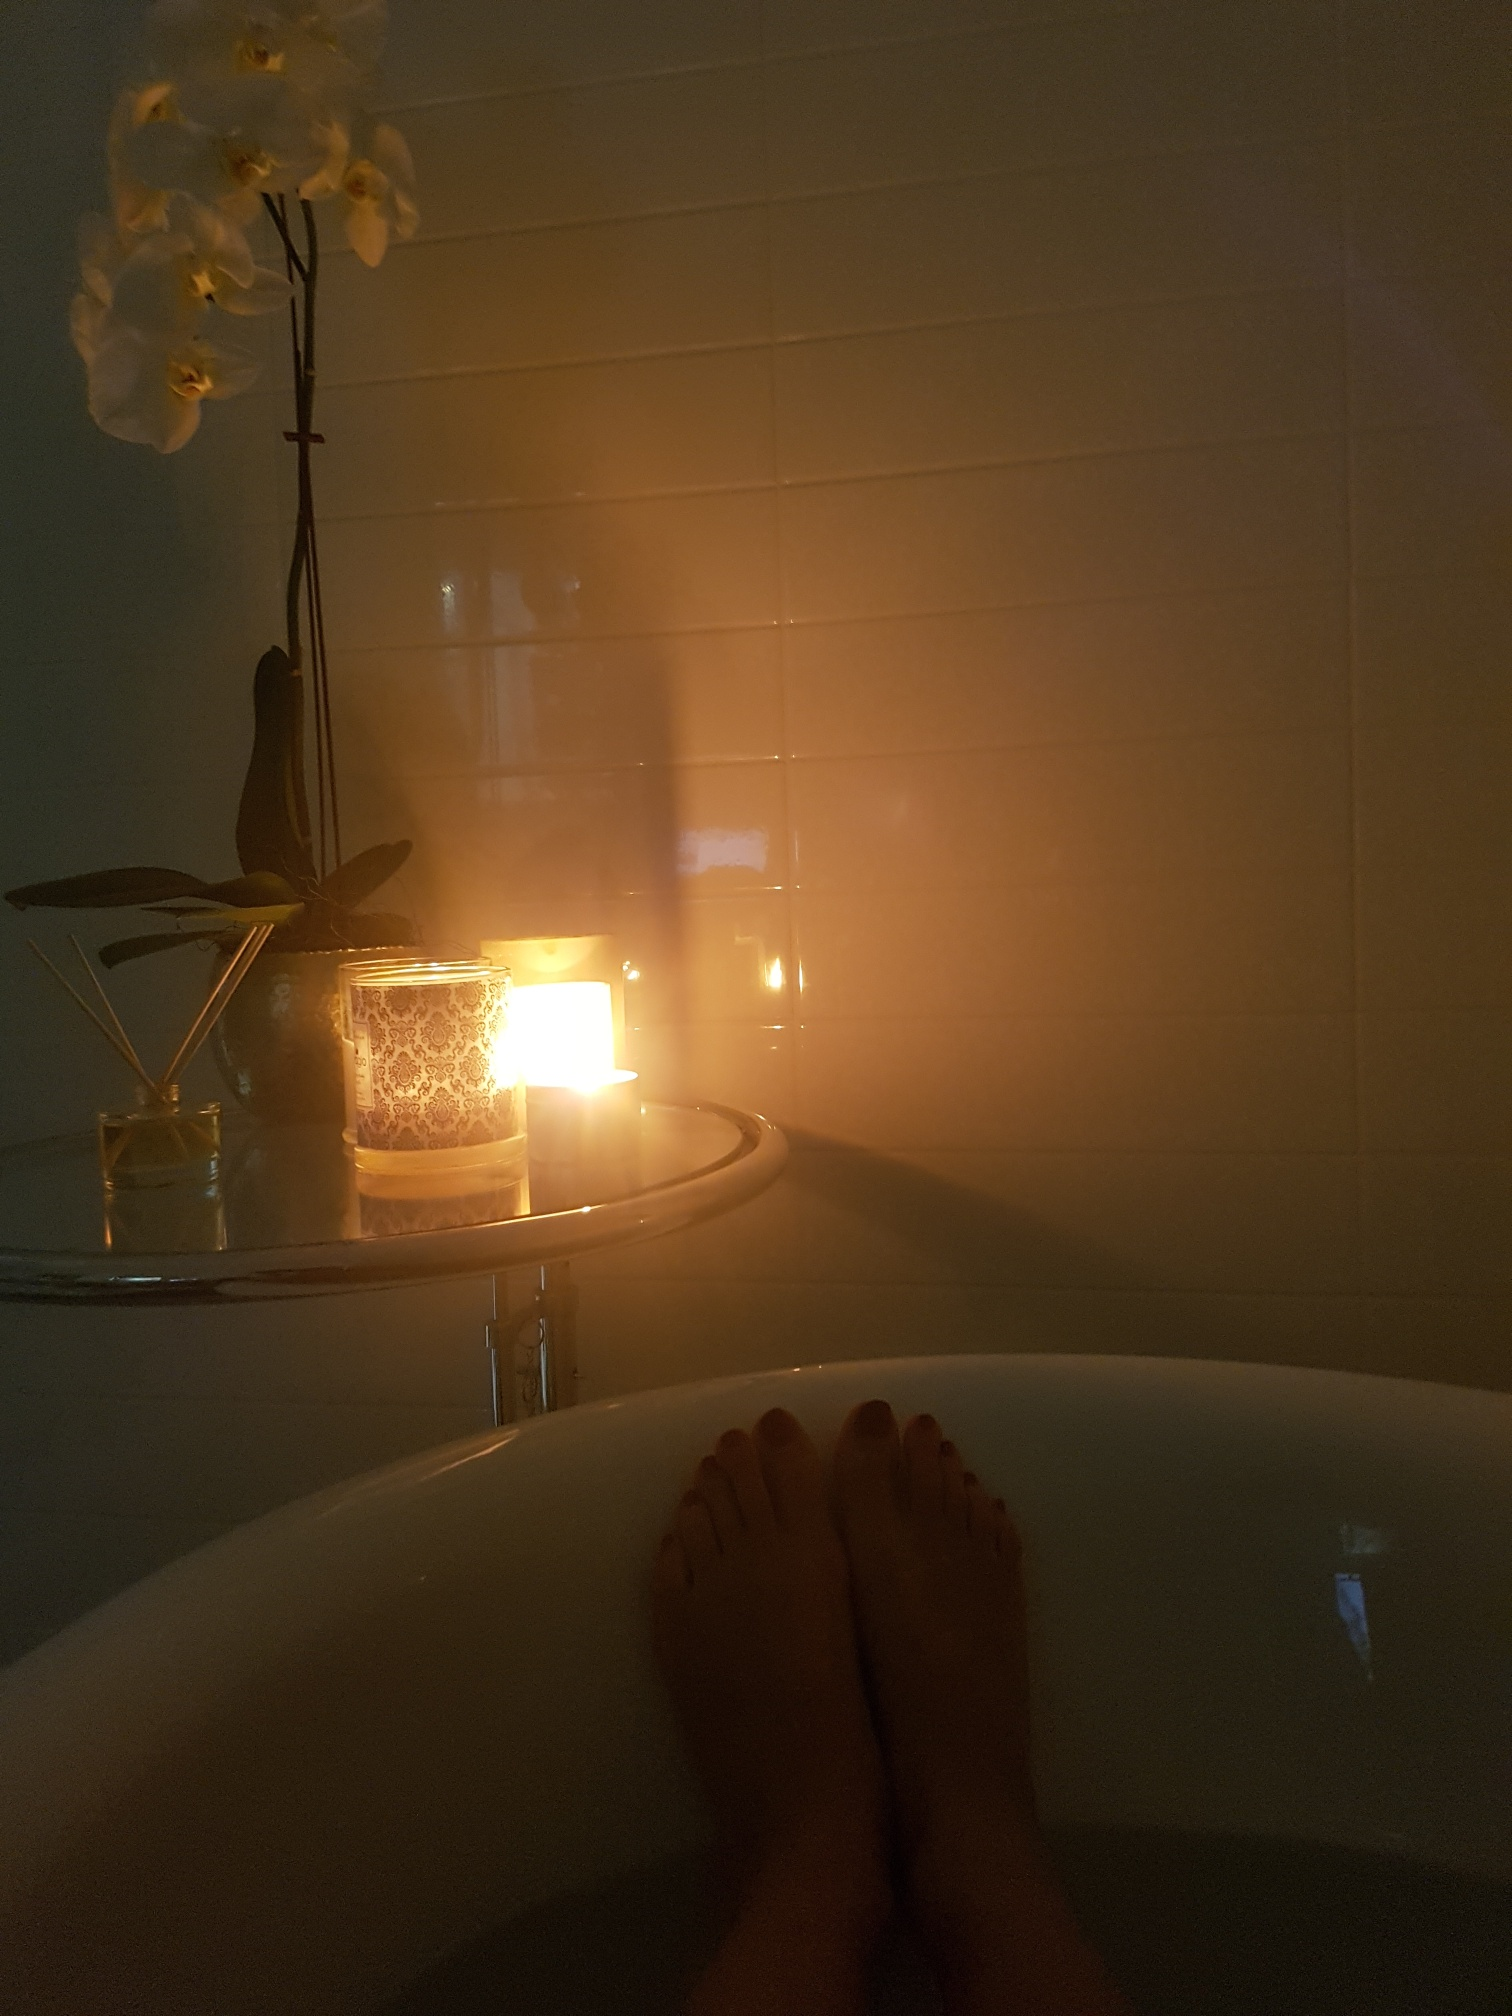 Relaxing Bath 2 hours before bed